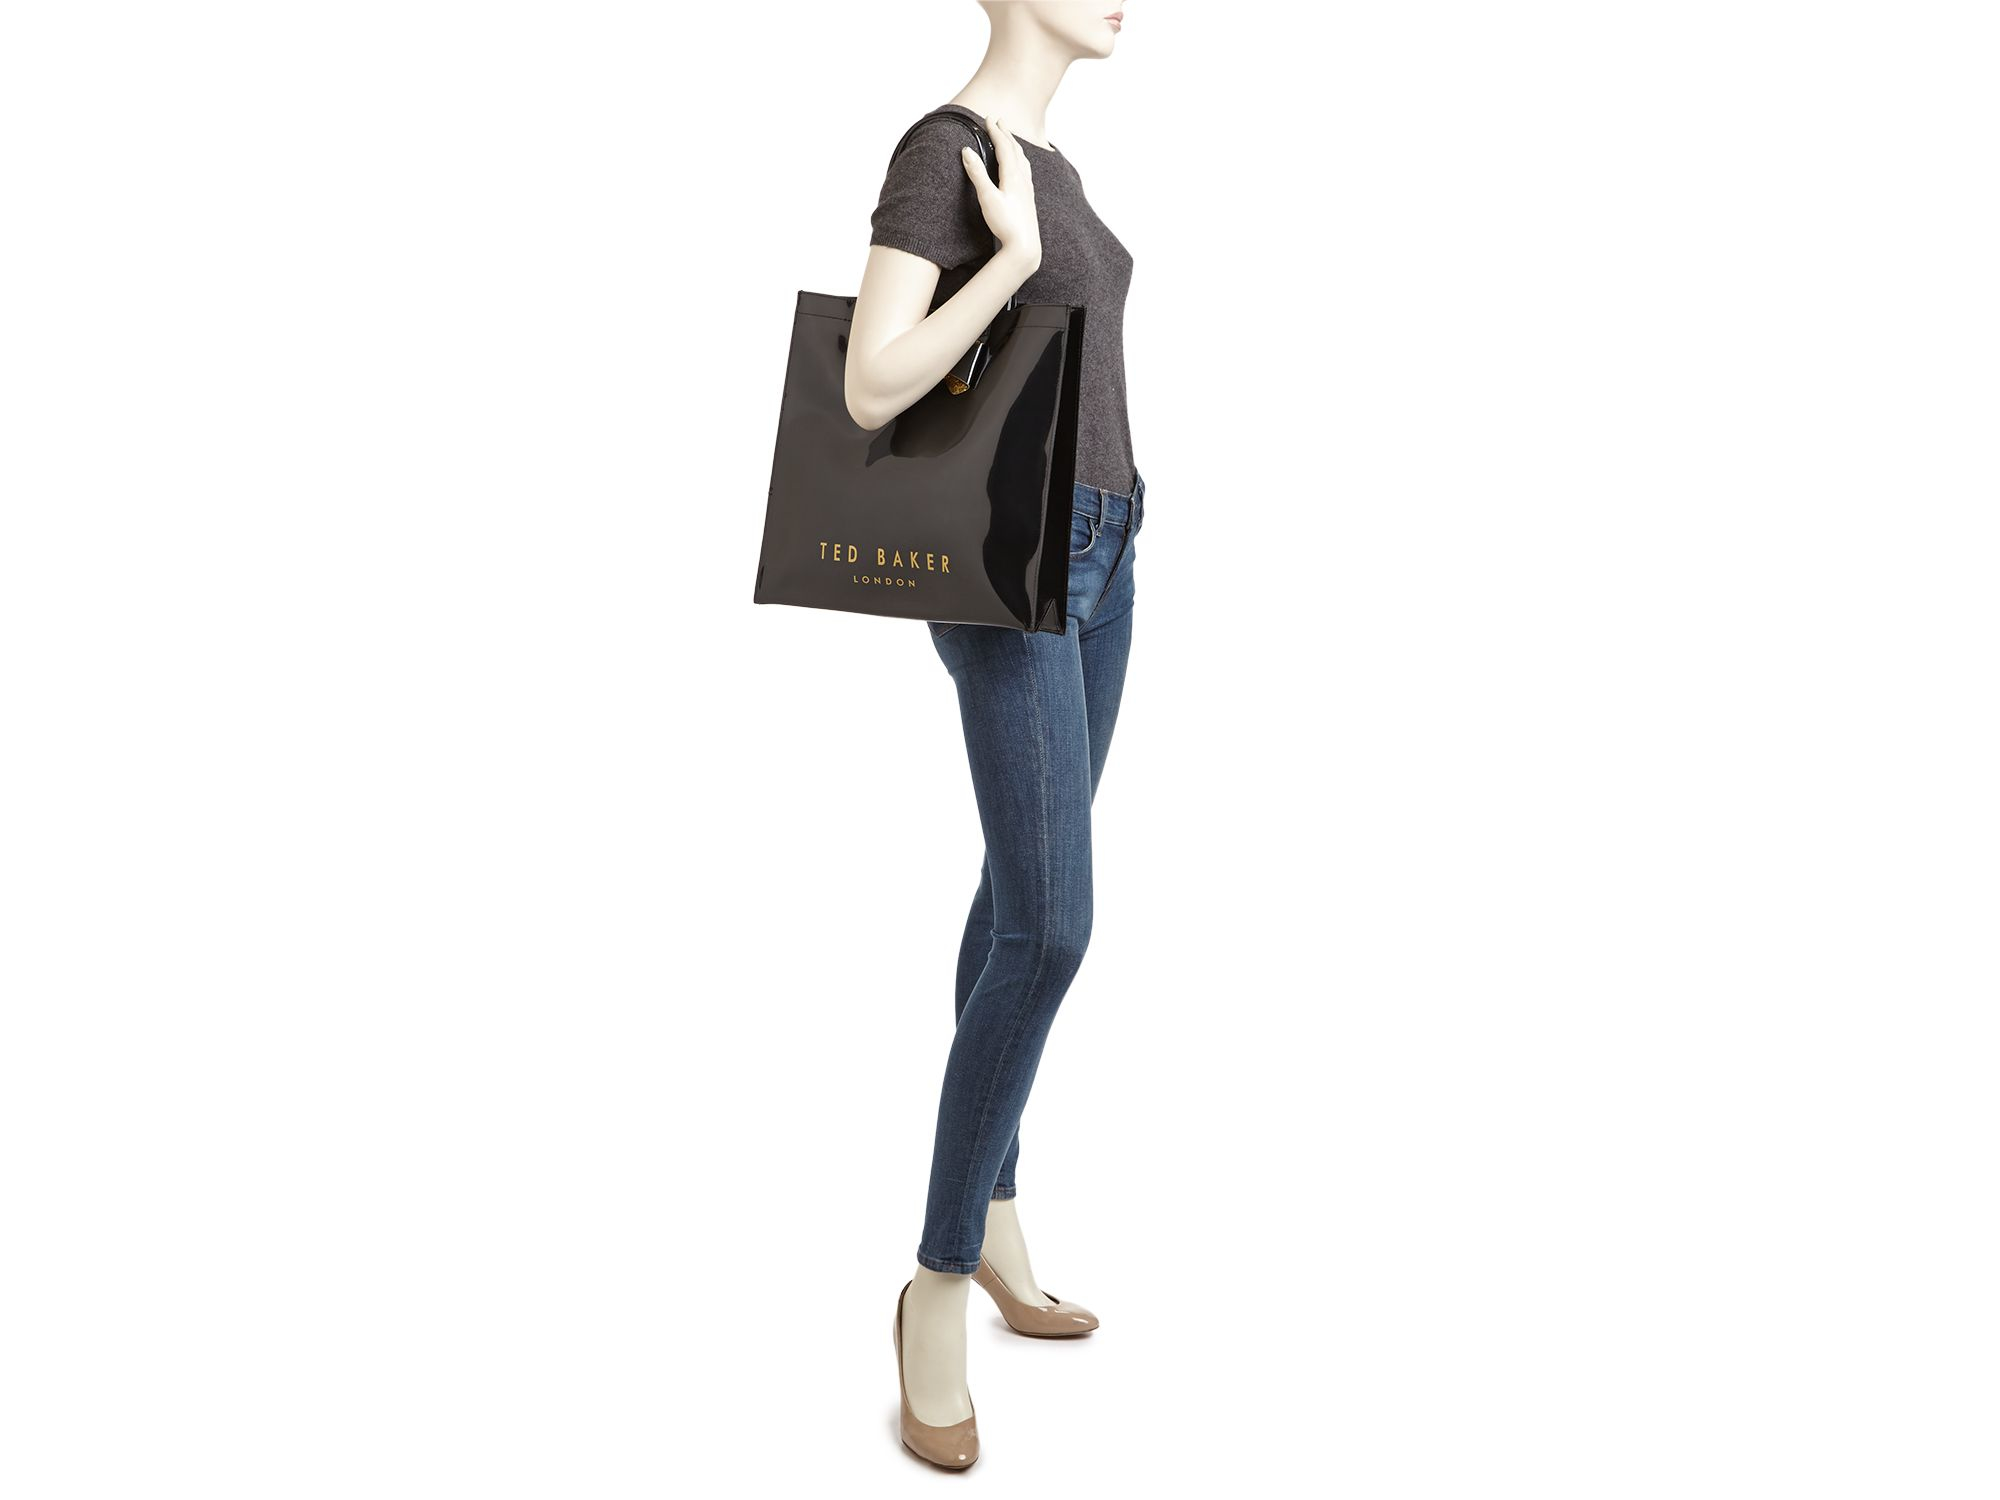 671341d677 Lyst ted baker glitter bow large icon tote in black jpg 2000x1500 Large  icon ted baker